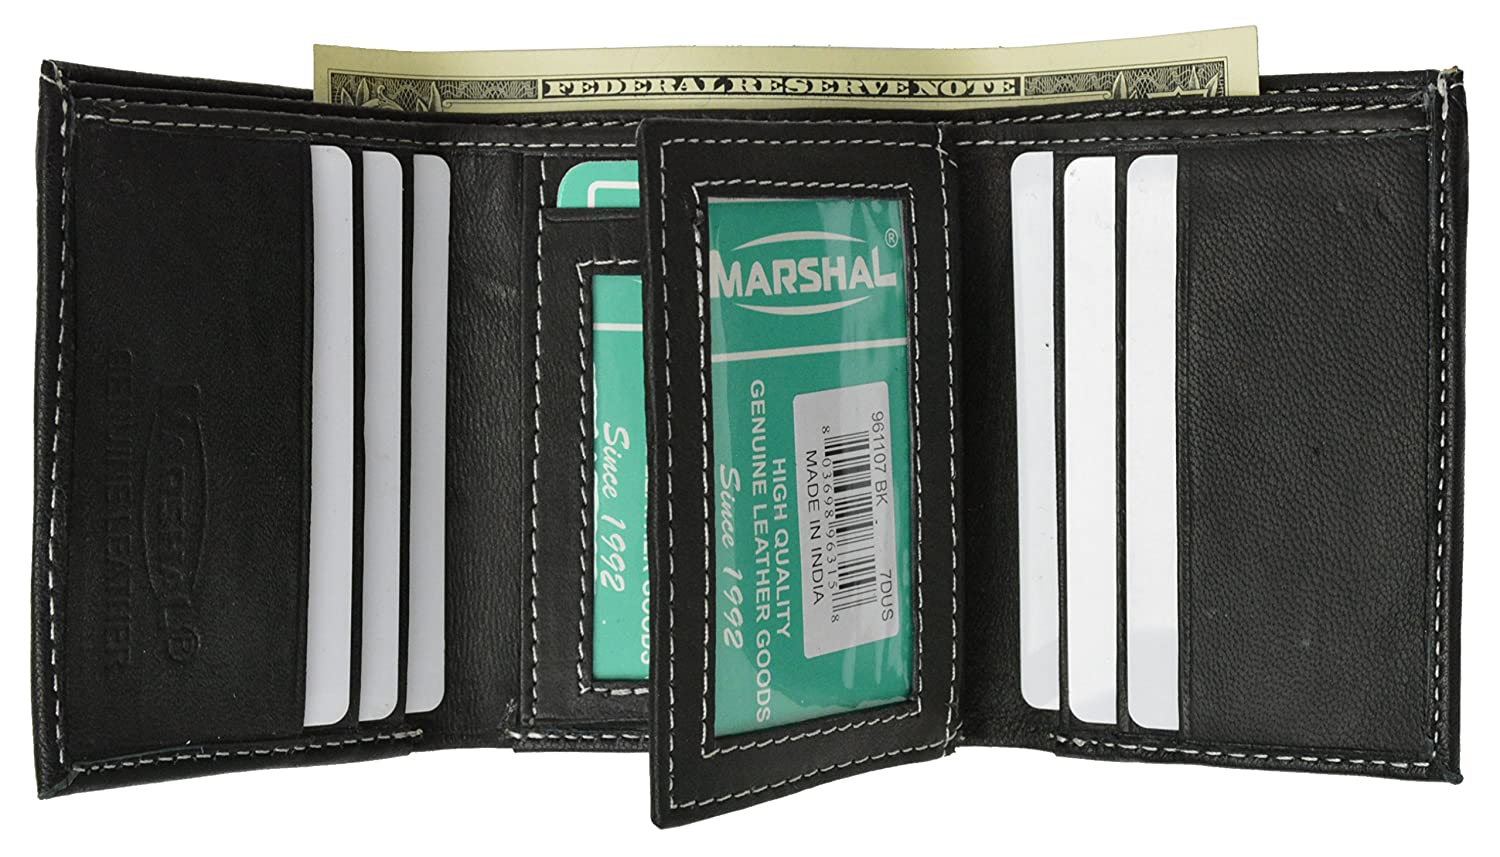 100% Leather Tri-fold Mens Wallet Black #961107 by Marshal O70148